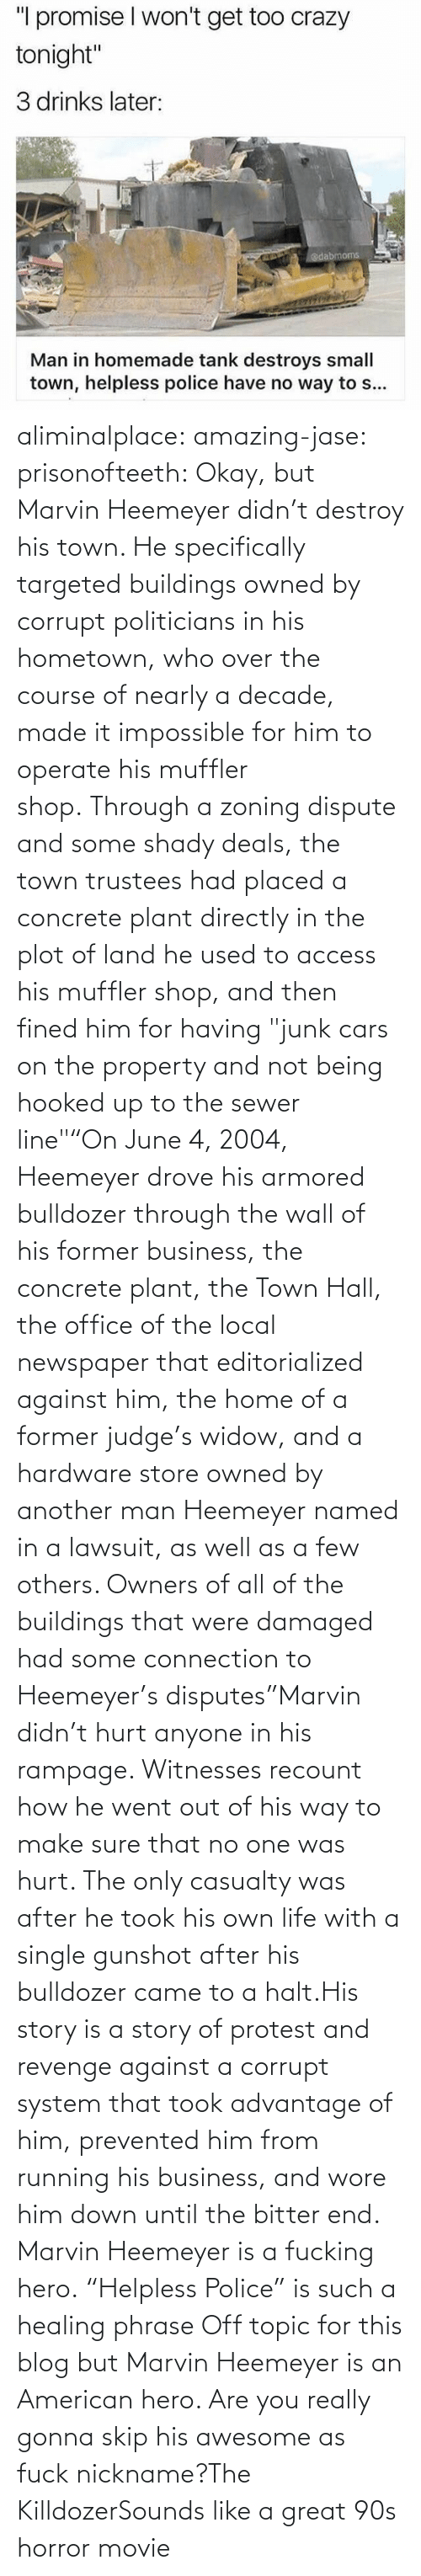 "impossible: aliminalplace: amazing-jase:  prisonofteeth: Okay, but Marvin Heemeyer didn't destroy his town. He specifically targeted buildings owned by corrupt politicians in his hometown, who over the course of nearly a decade, made it impossible for him to operate his muffler shop. Through a zoning dispute and some shady deals, the town trustees had placed a concrete plant directly in the plot of land he used to access his muffler shop, and then fined him for having ""junk cars on the property and not being hooked up to the sewer line""""On June 4, 2004, Heemeyer drove his armored bulldozer through the wall of his former business, the concrete plant, the Town Hall, the office of the local newspaper that editorialized against him, the home of a former judge's widow, and a hardware store owned by another man Heemeyer named in a lawsuit, as well as a few others. Owners of all of the buildings that were damaged had some connection to Heemeyer's disputes""Marvin didn't hurt anyone in his rampage. Witnesses recount how he went out of his way to make sure that no one was hurt. The only casualty was after he took his own life with a single gunshot after his bulldozer came to a halt.His story is a story of protest and revenge against a corrupt system that took advantage of him, prevented him from running his business, and wore him down until the bitter end. Marvin Heemeyer is a fucking hero. ""Helpless Police"" is such a healing phrase    Off topic for this blog but Marvin Heemeyer is an American hero.     Are you really gonna skip his awesome as fuck nickname?The KilldozerSounds like a great 90s horror movie"